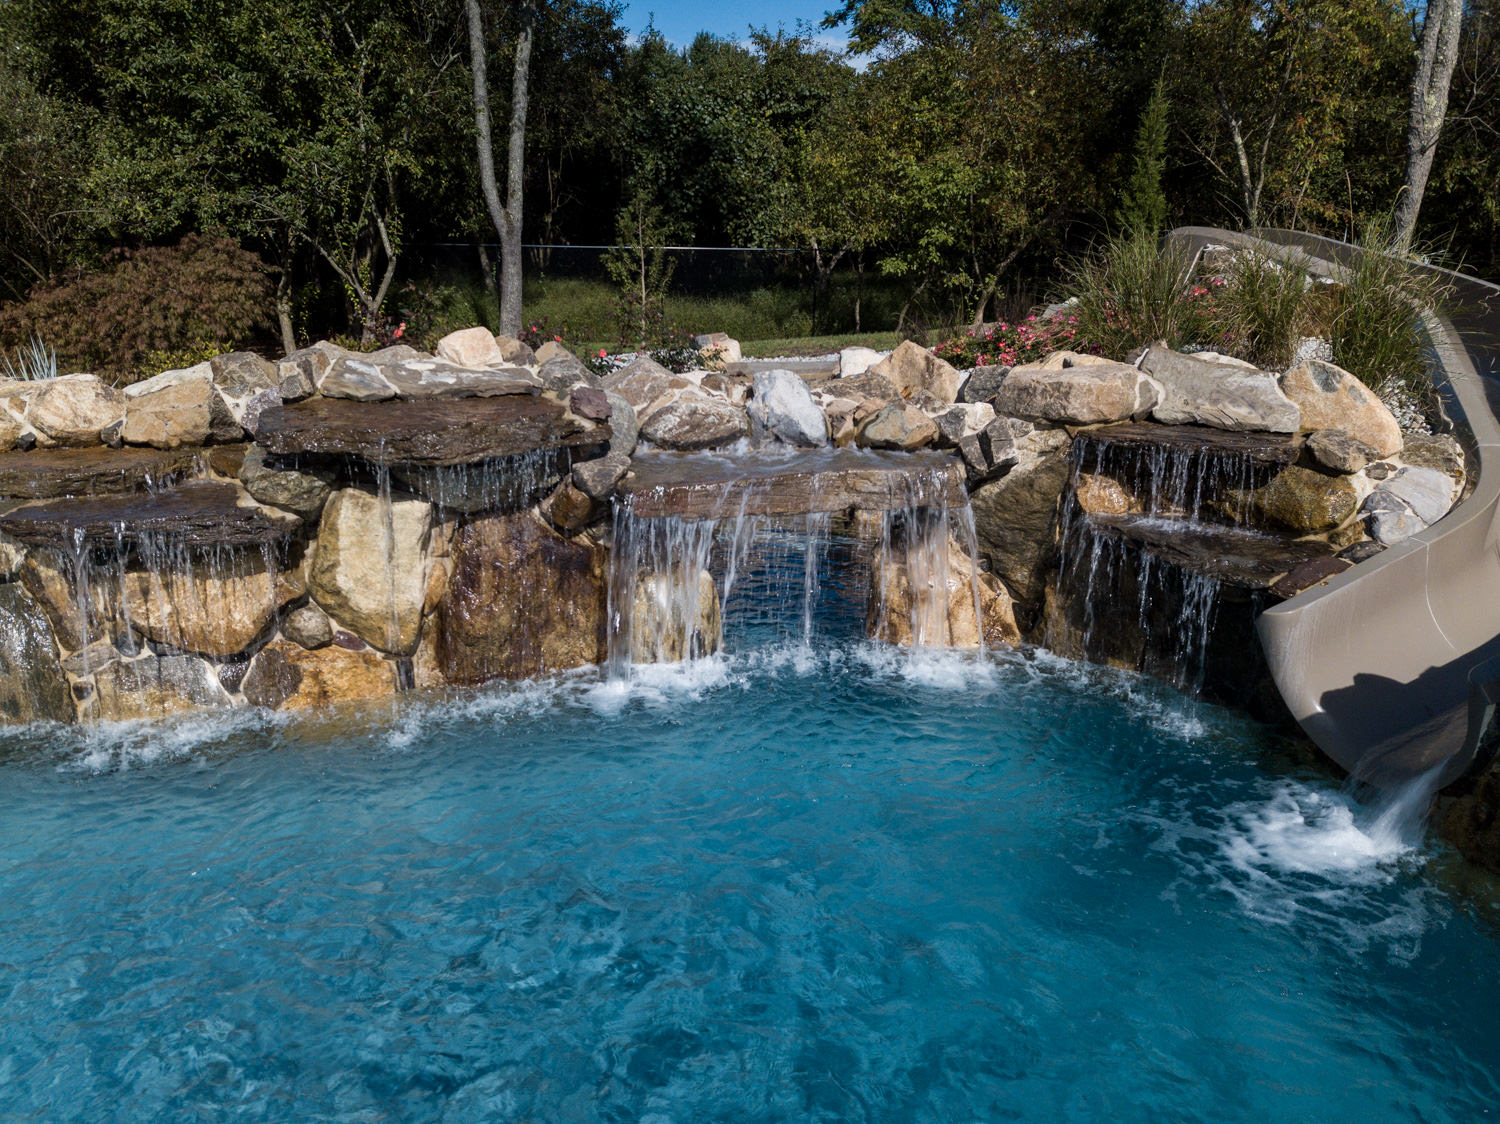 26-Custom-Pool-Design-Pennington-NJ-K-and-C-Land-Design.jpg